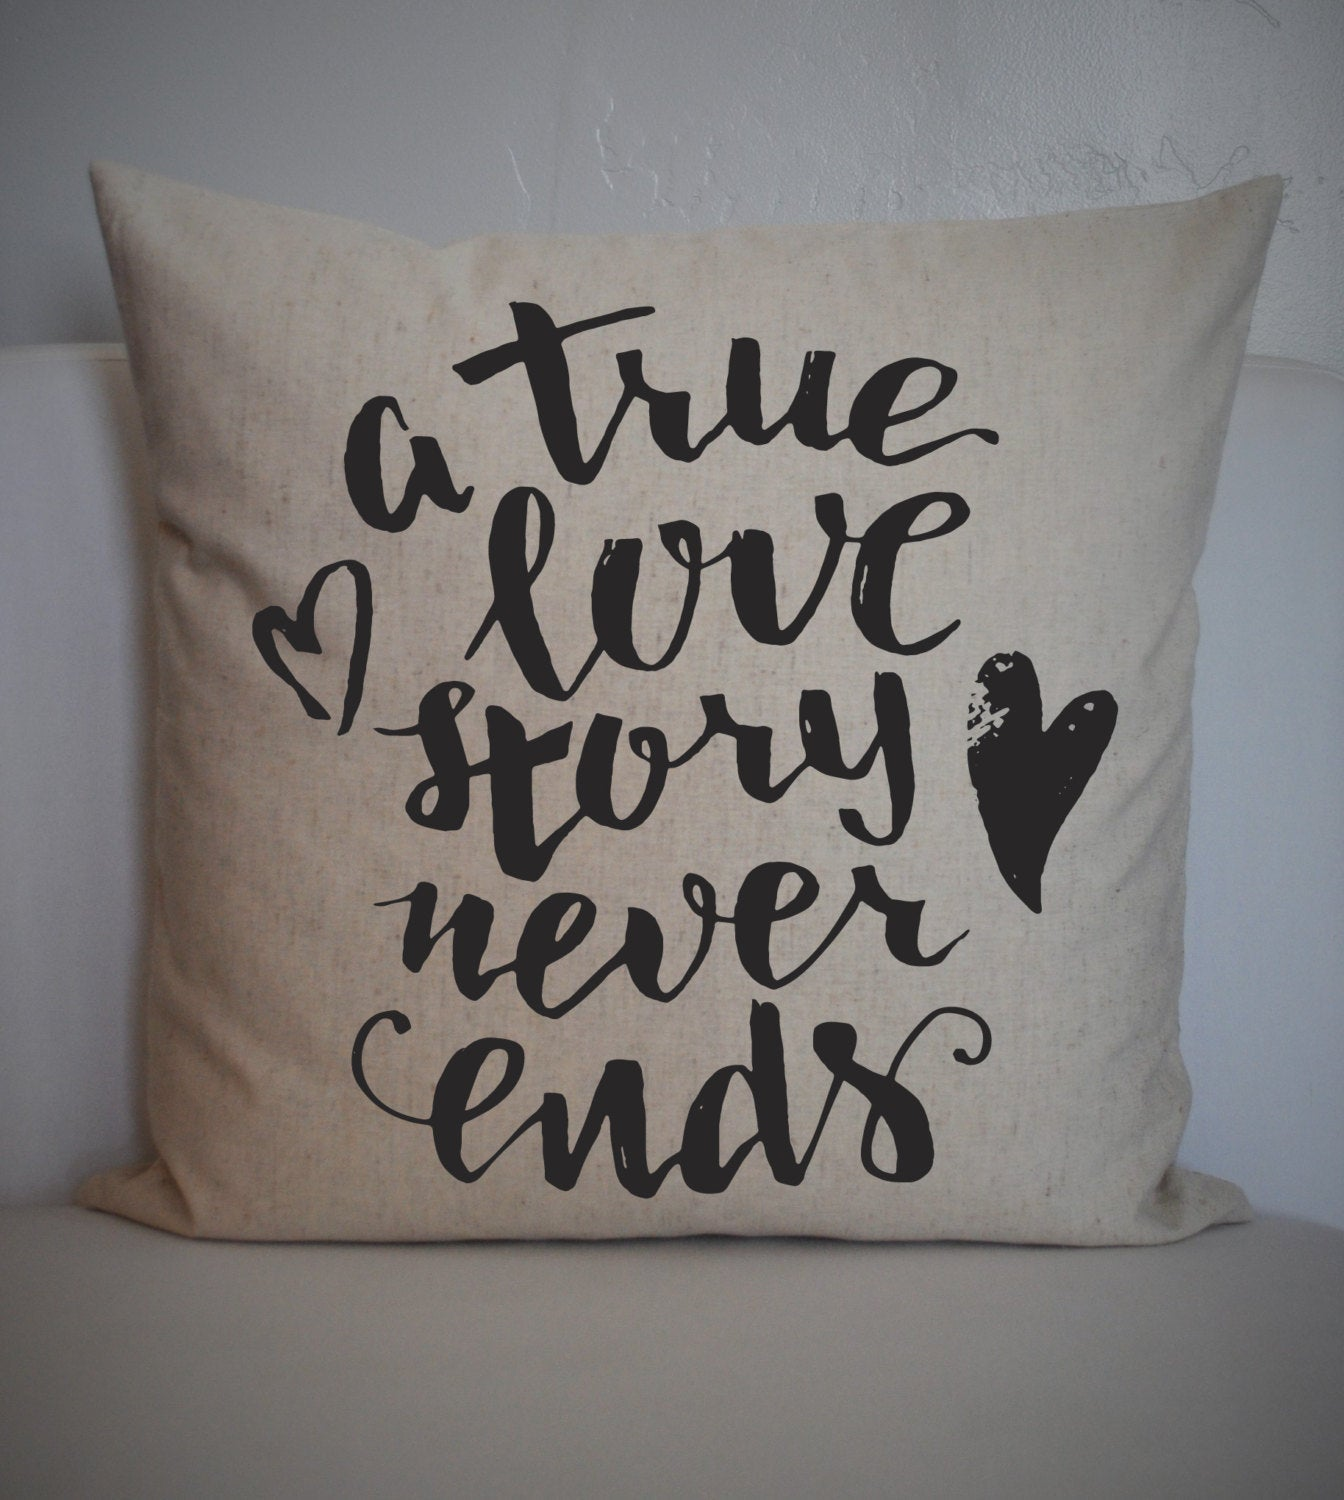 SALE, A true love story never ends, wedding pillow cover, Anniversary Pillow Cover, valentines pillow cover